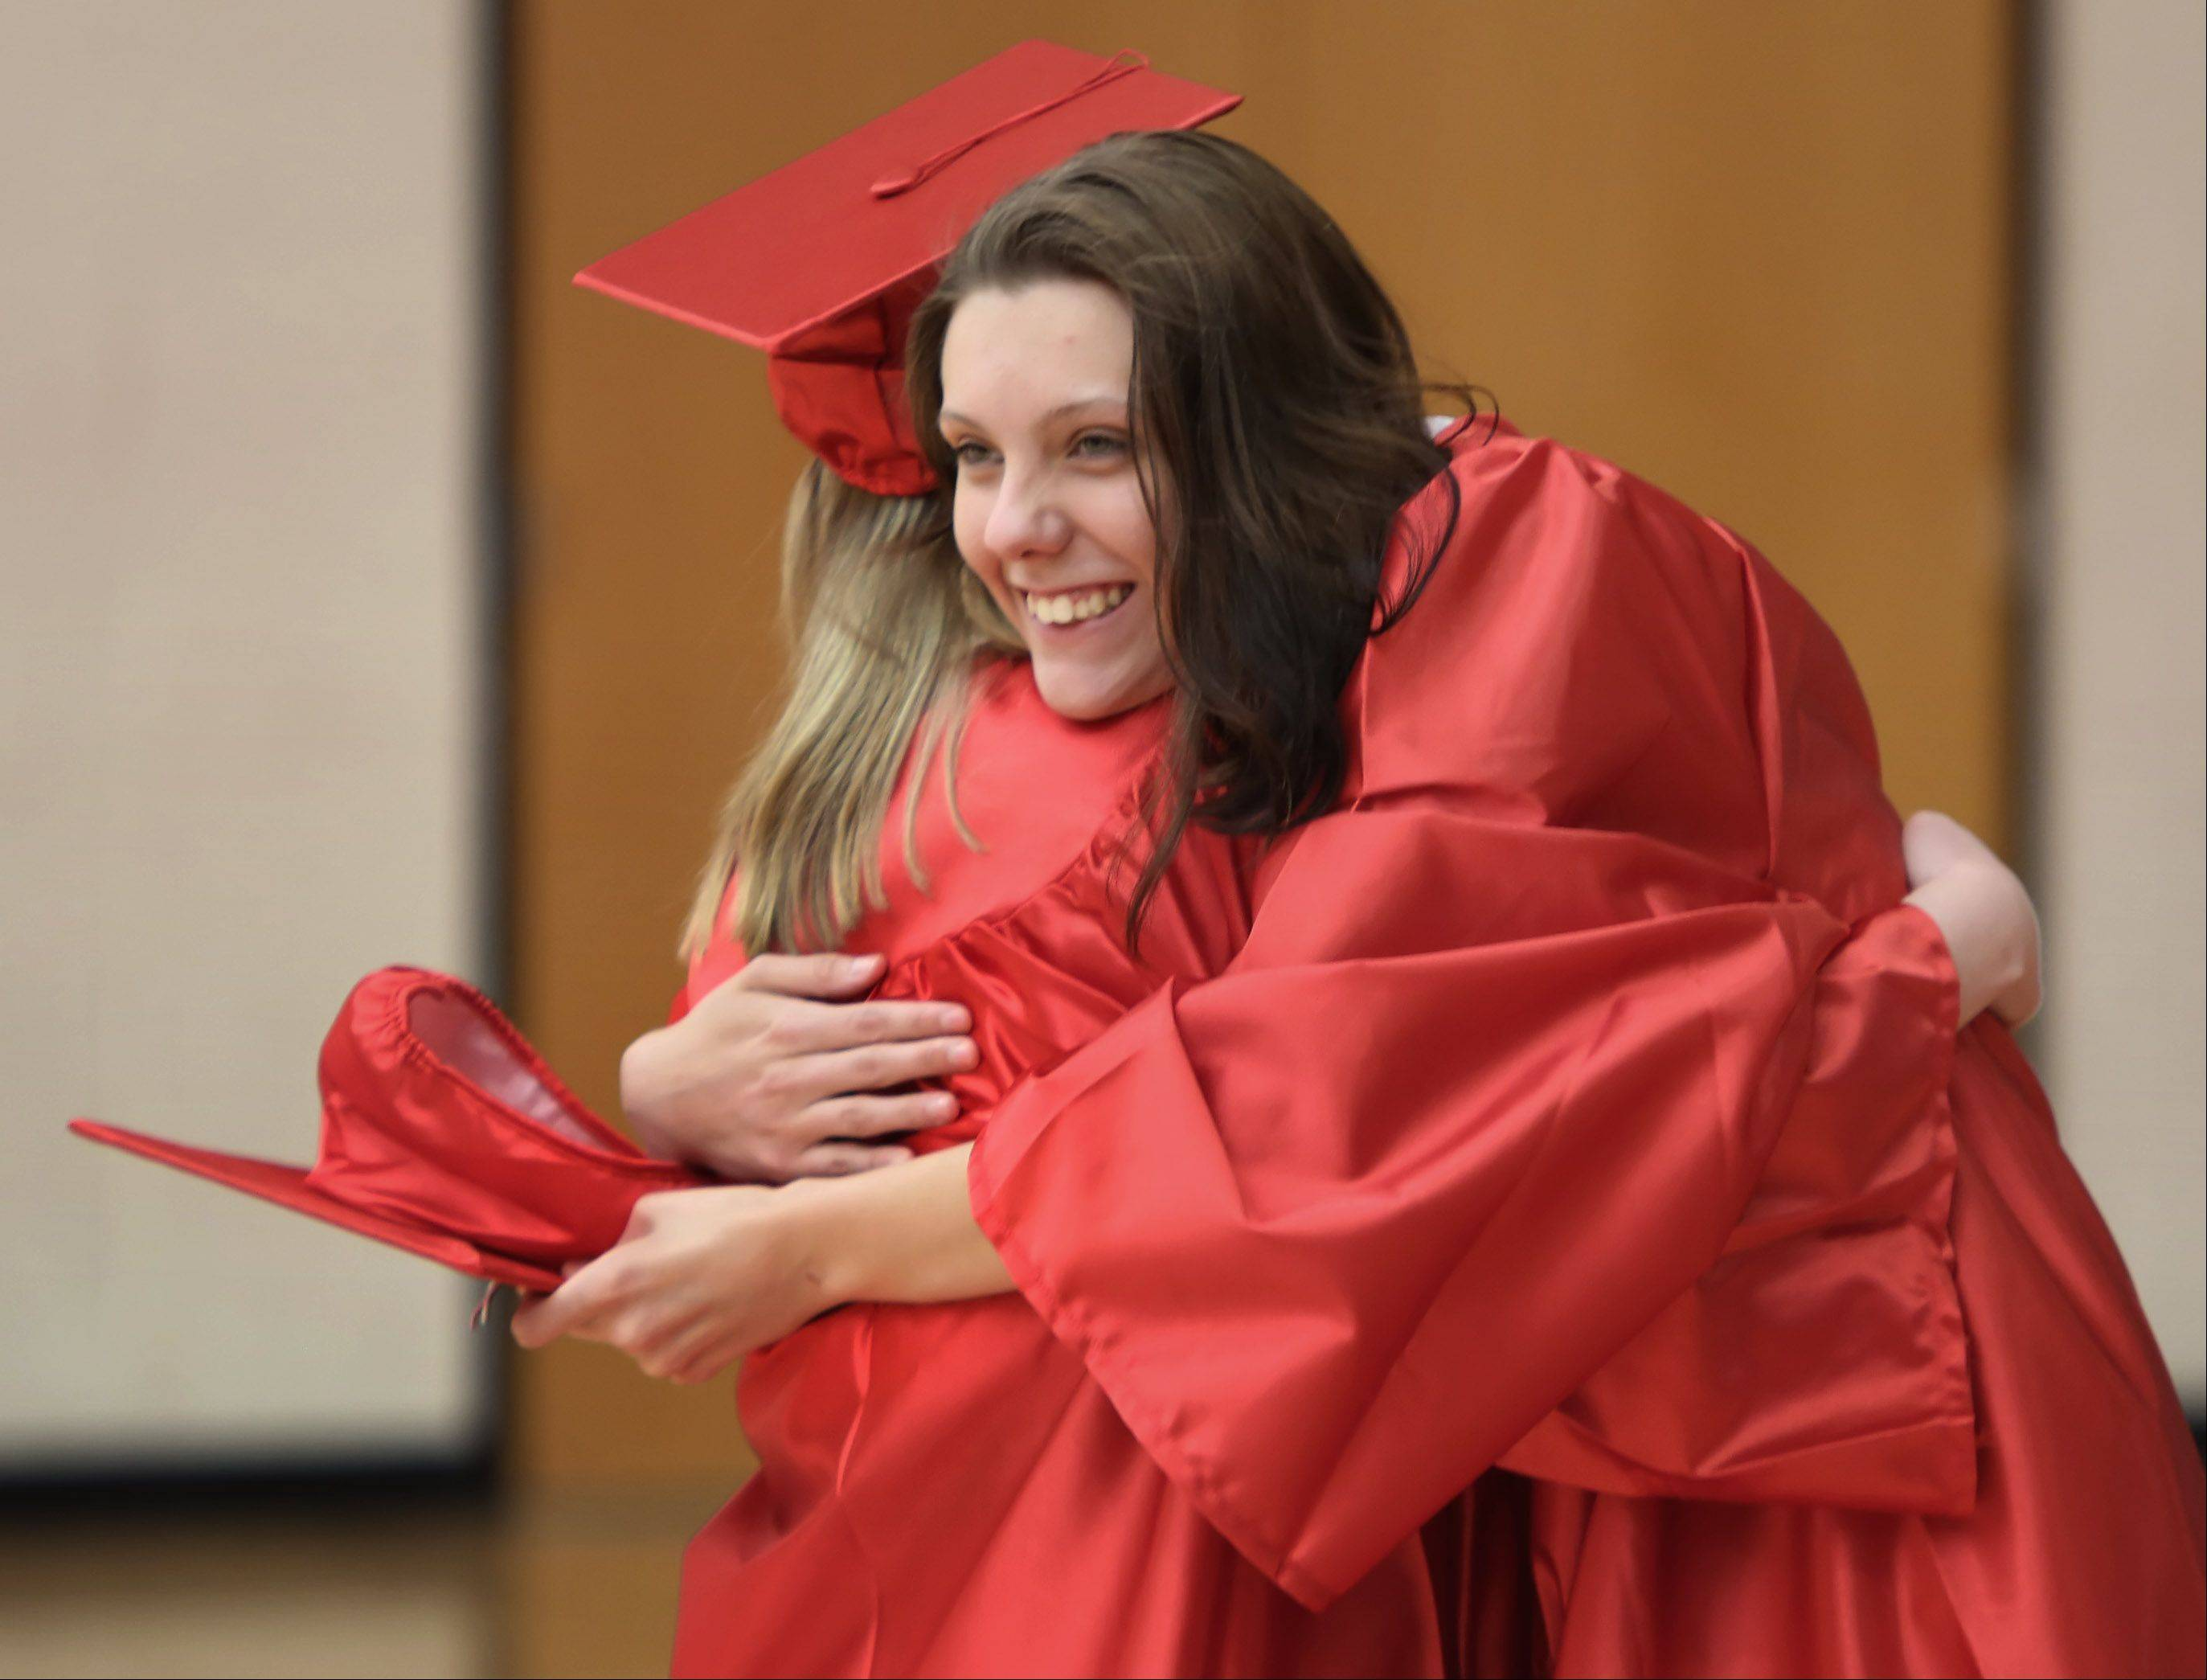 Carol Schoiber, right, hugs her friend Taylor Spradling during the Grant High School graduation ceremony on Sunday. There were 399 seniors graduating this year at the school.